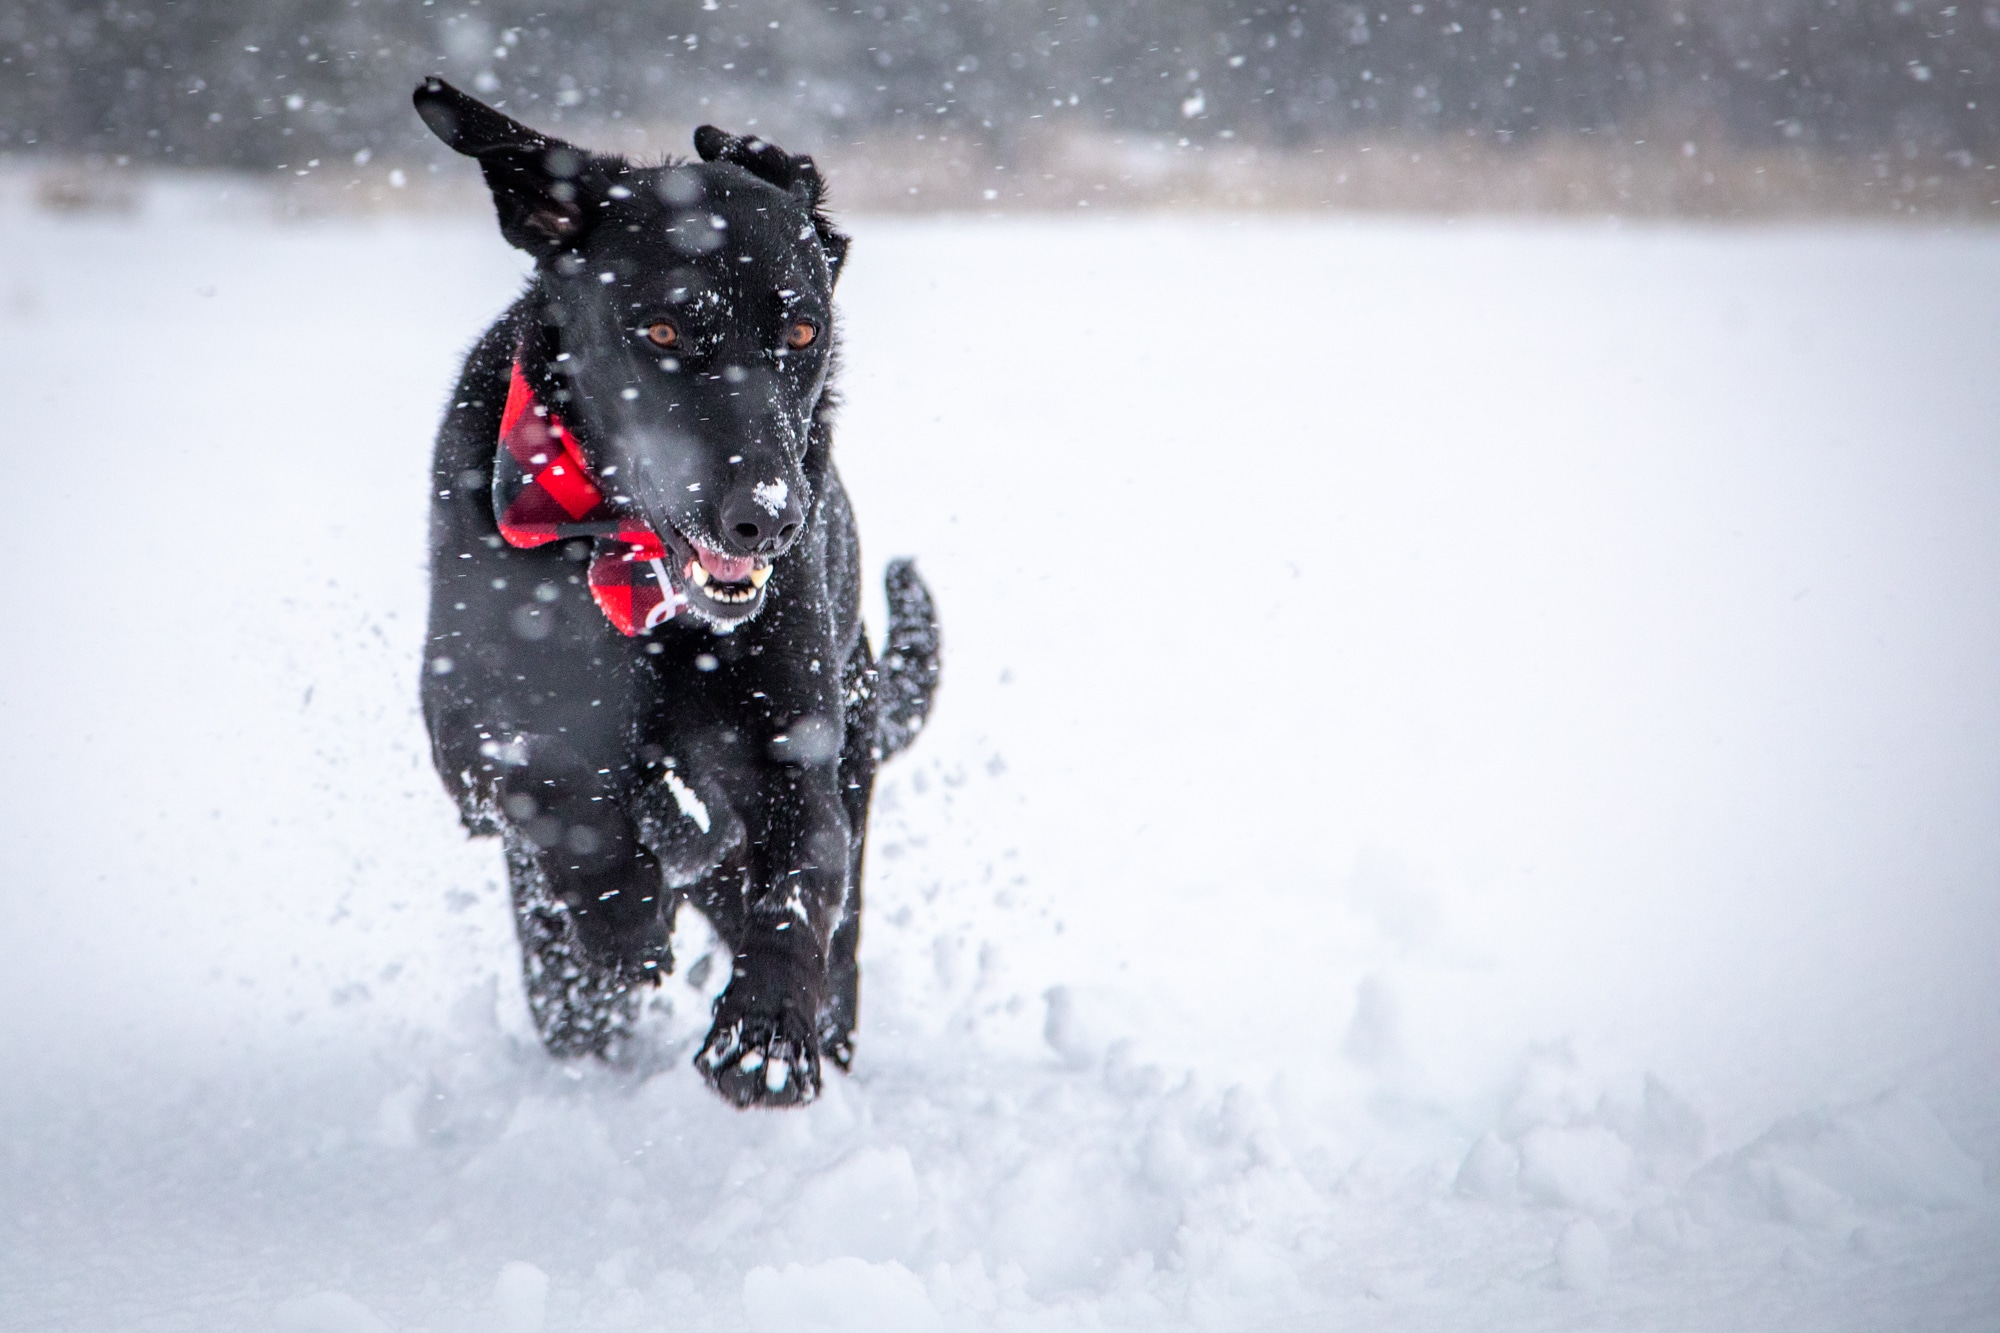 Photograph of dog running in the snow